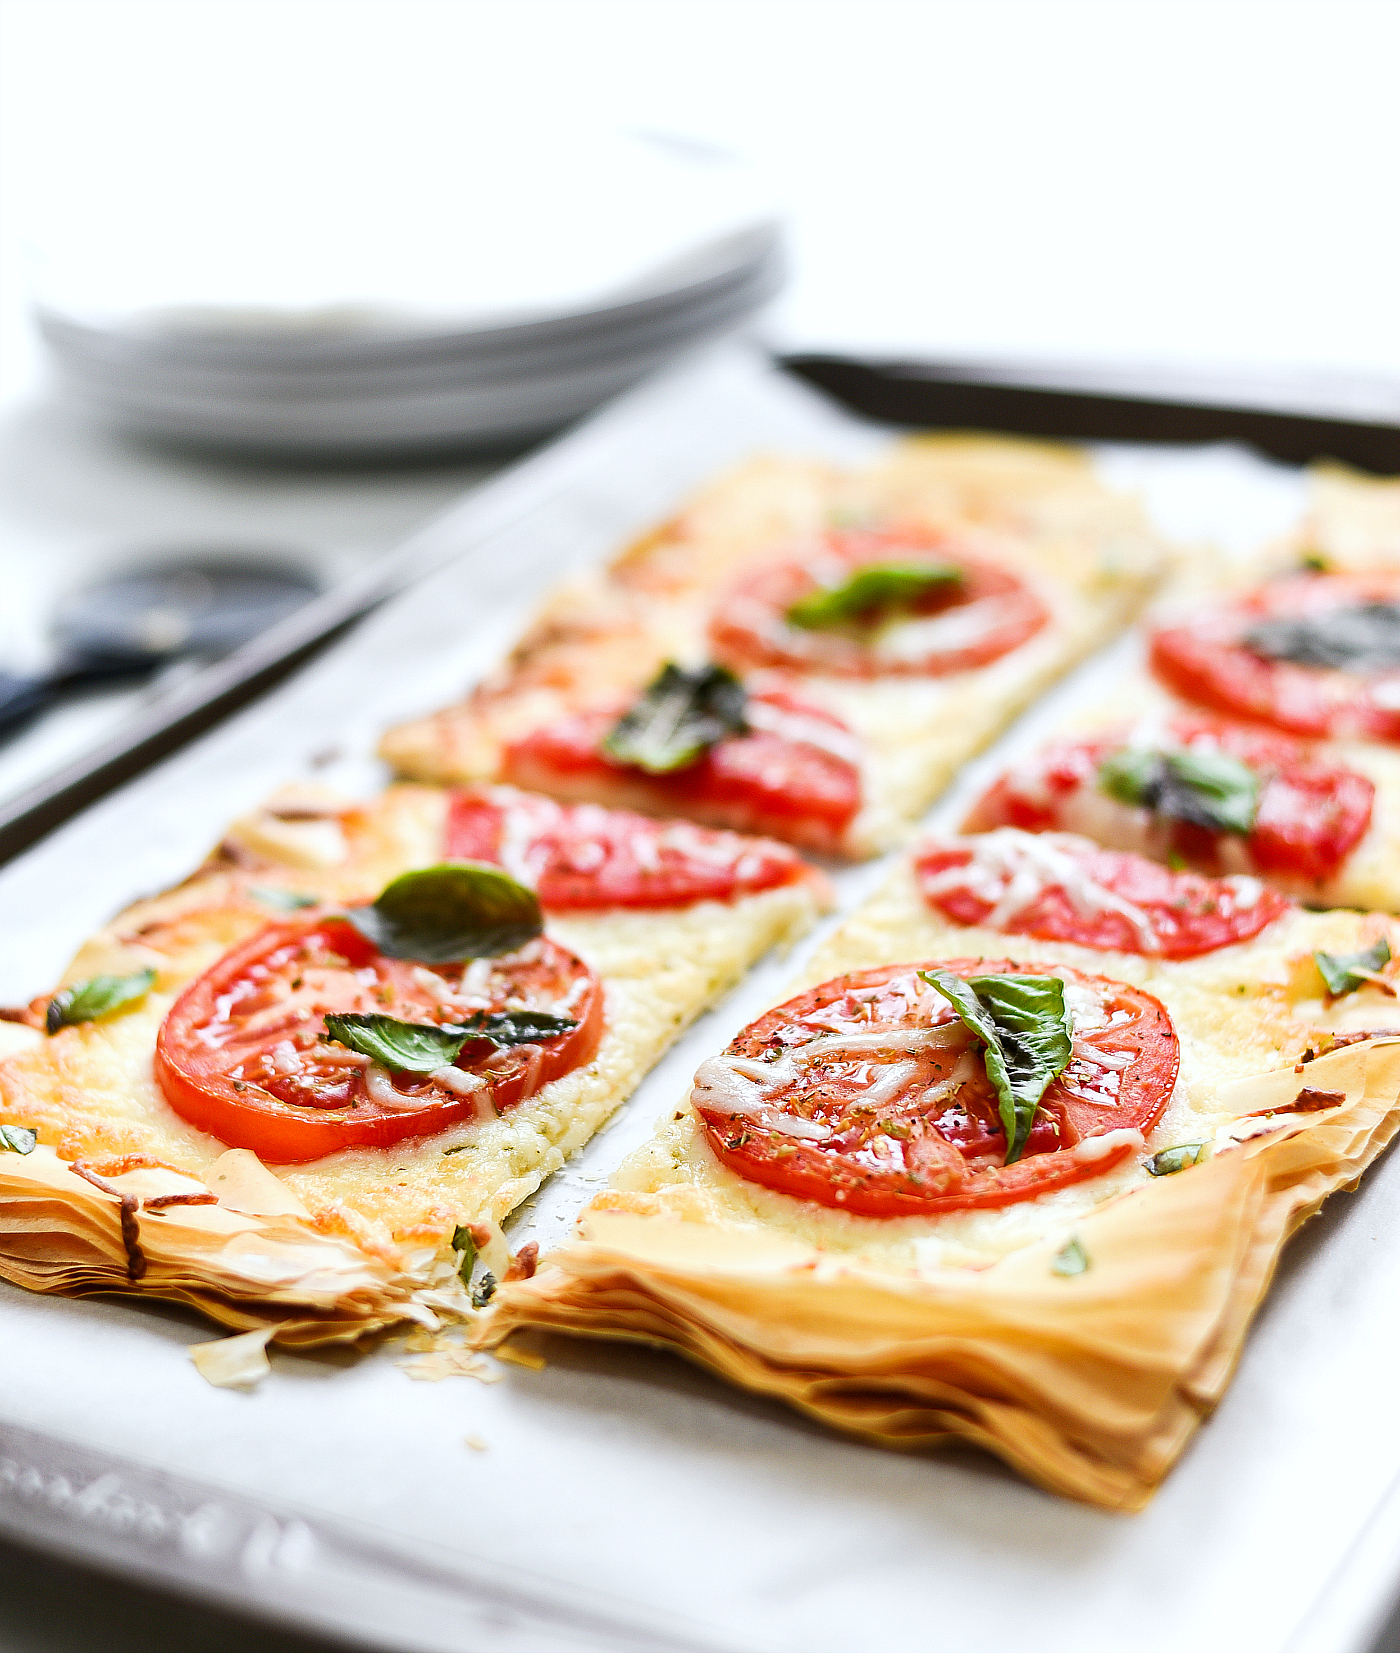 Weight Watchers Phyllo Dough Recipe - Fillo Dough Pizza